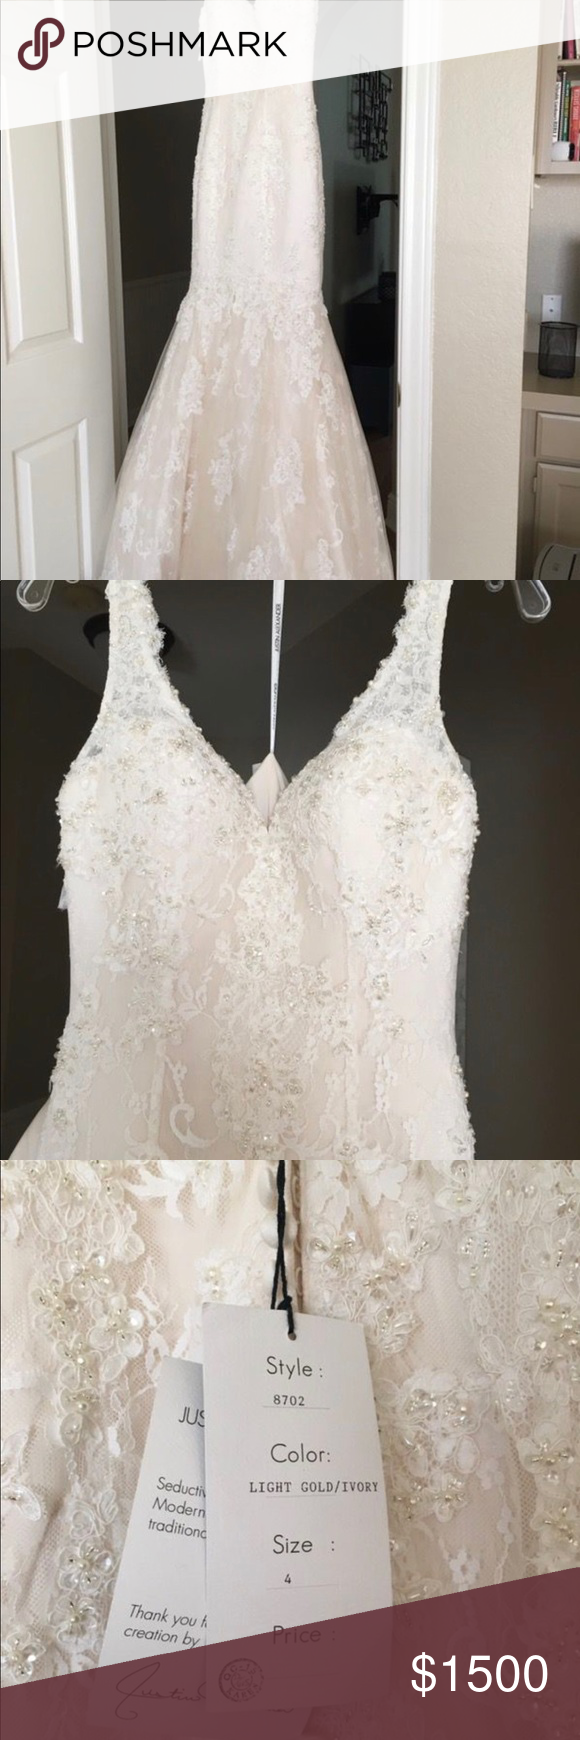 Justin alexander wedding dress boutique beaded lace champagne and